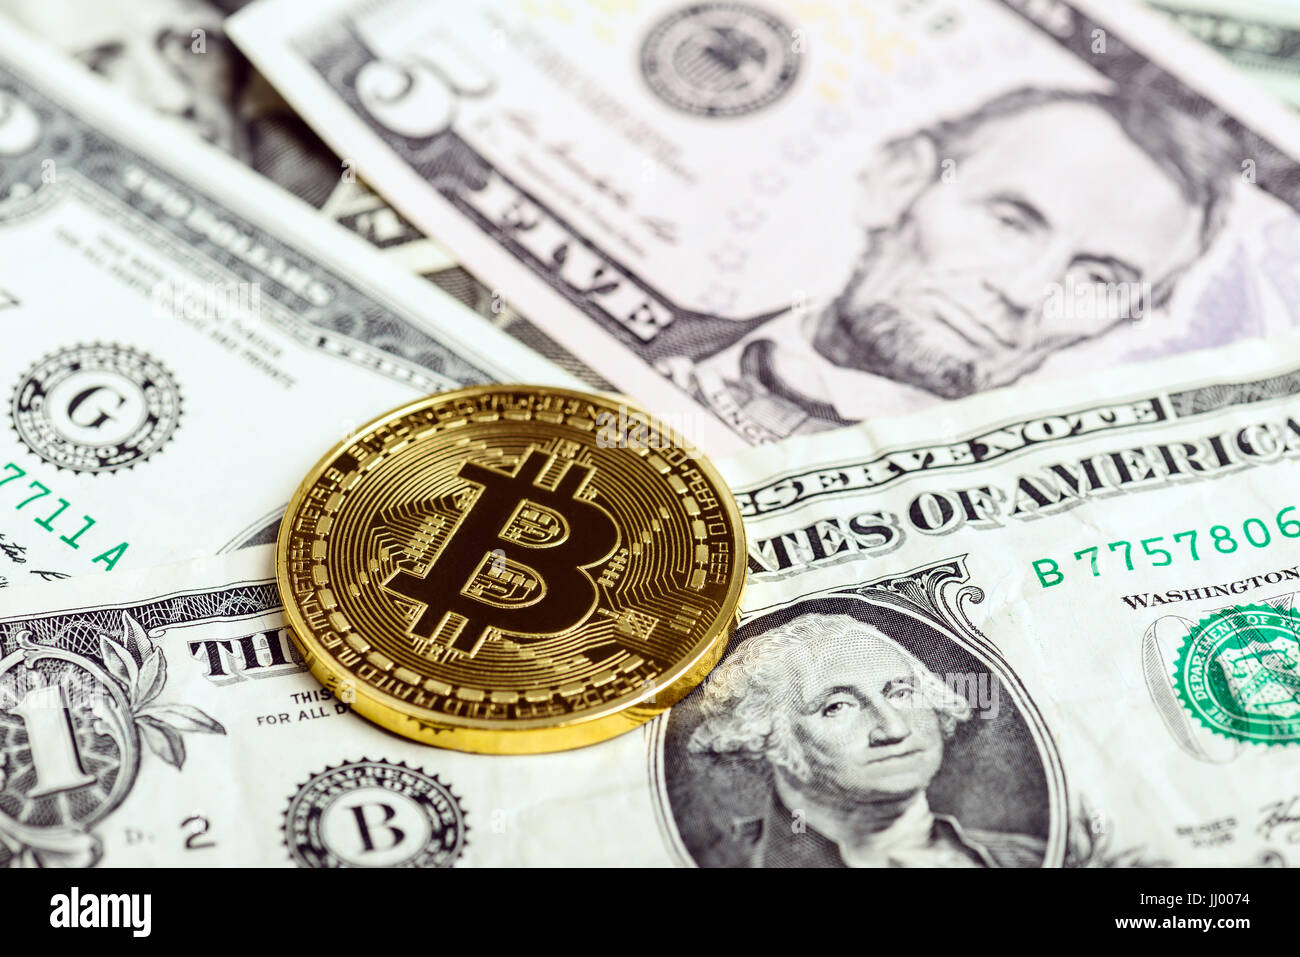 Bitcoin coin over money background - Stock Image